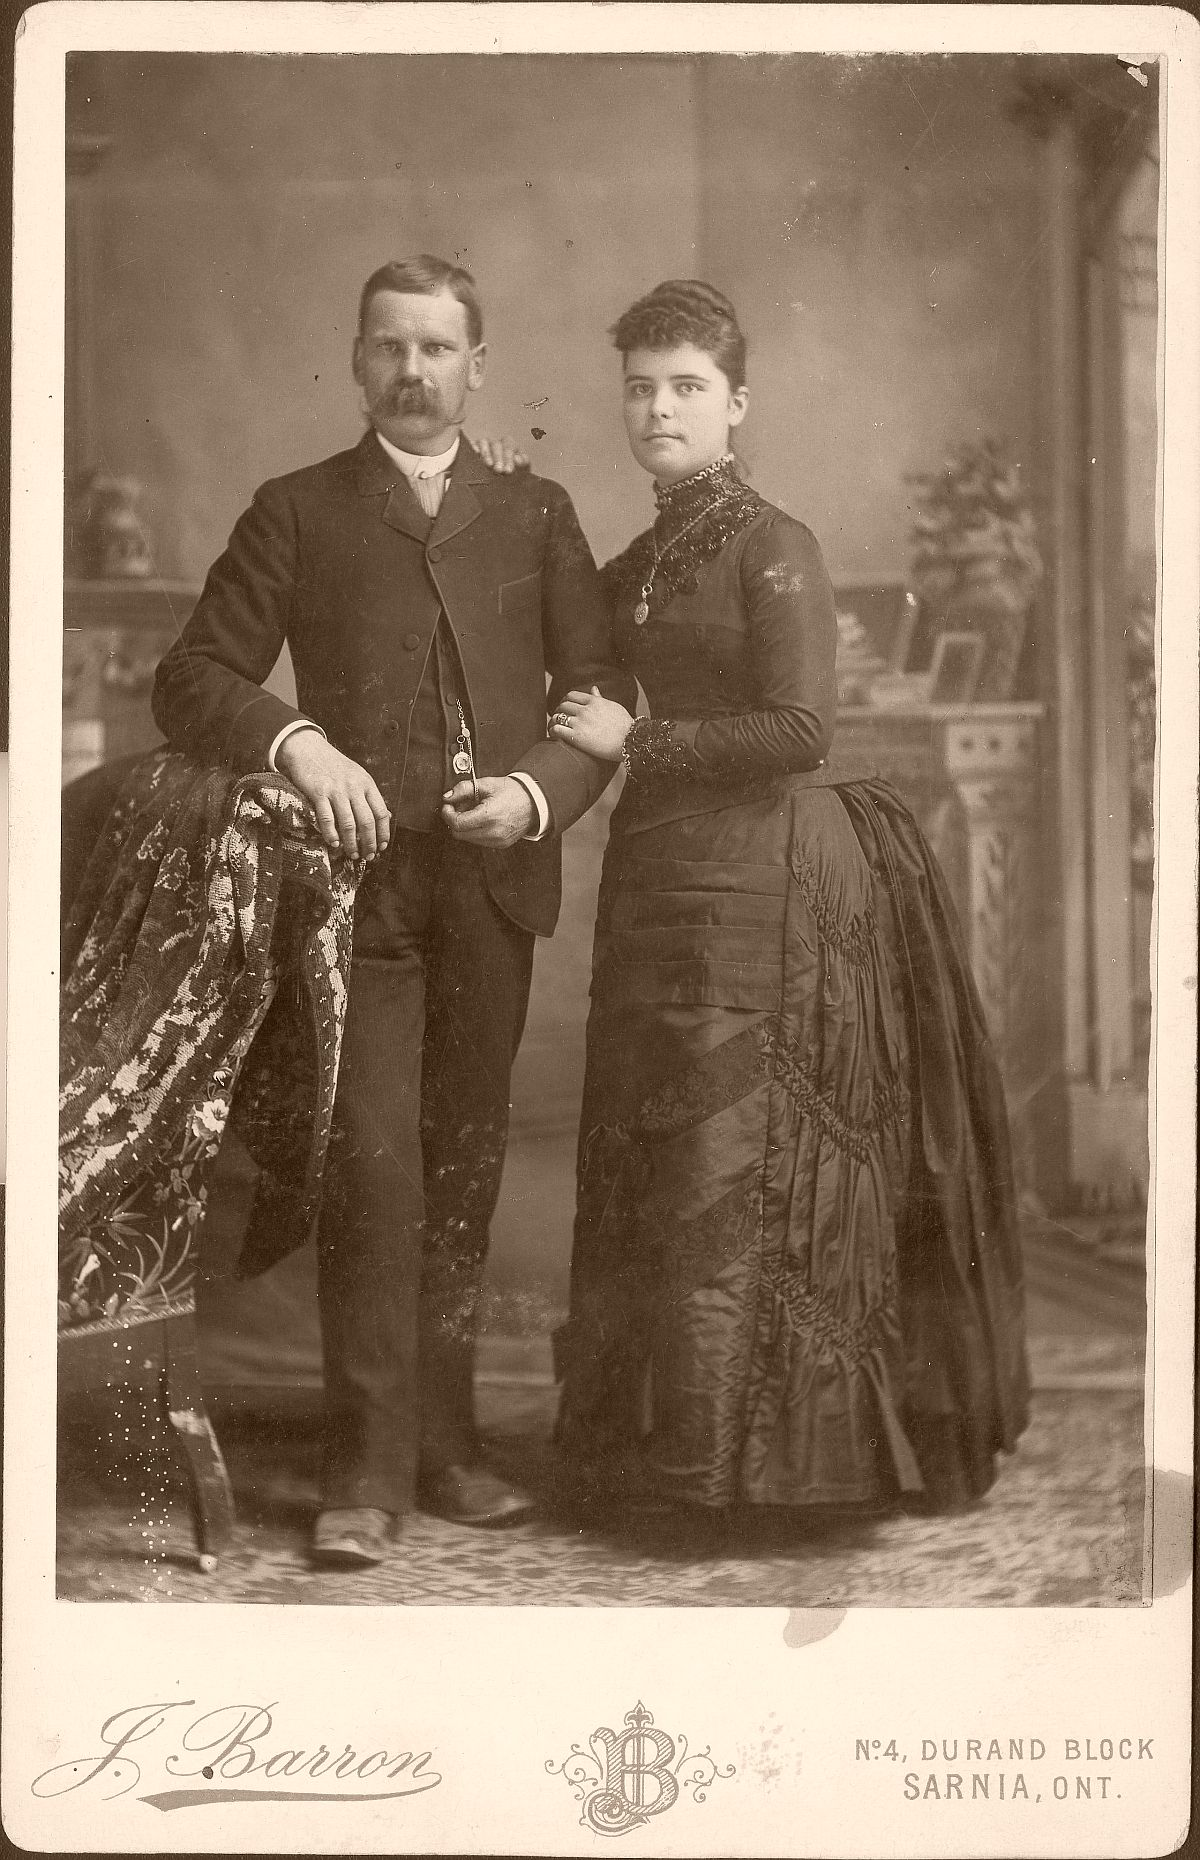 cabinet-cards-1870s-to-1880s-vintage-19th-century-victorian-era-01